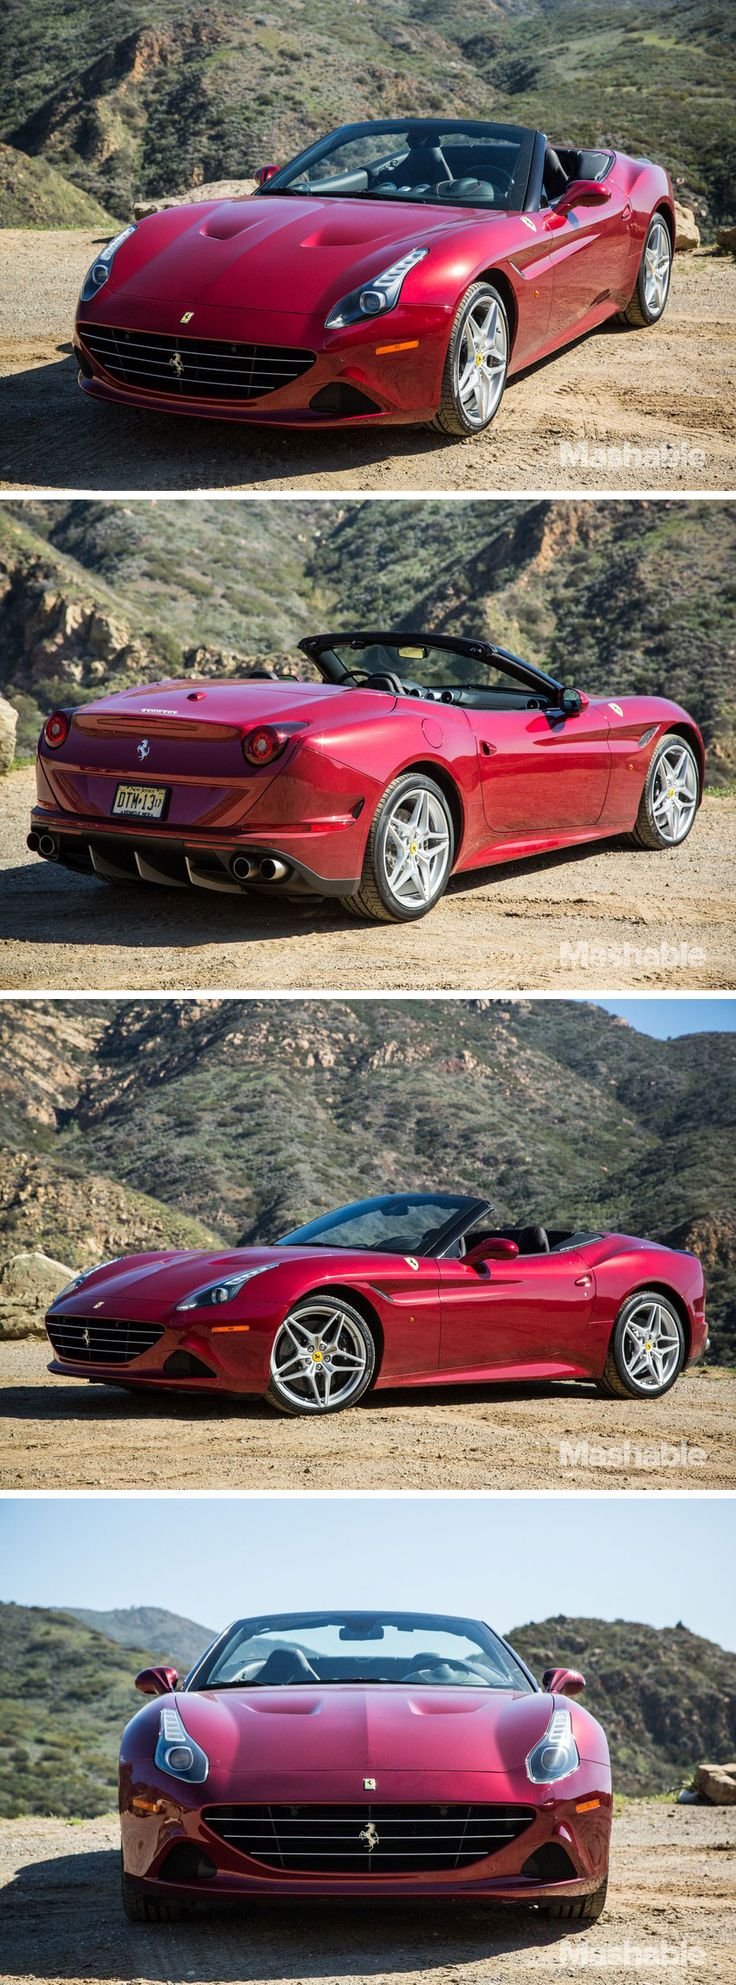 Ferrari's new California T car exemplifies the best of the the automotive industry